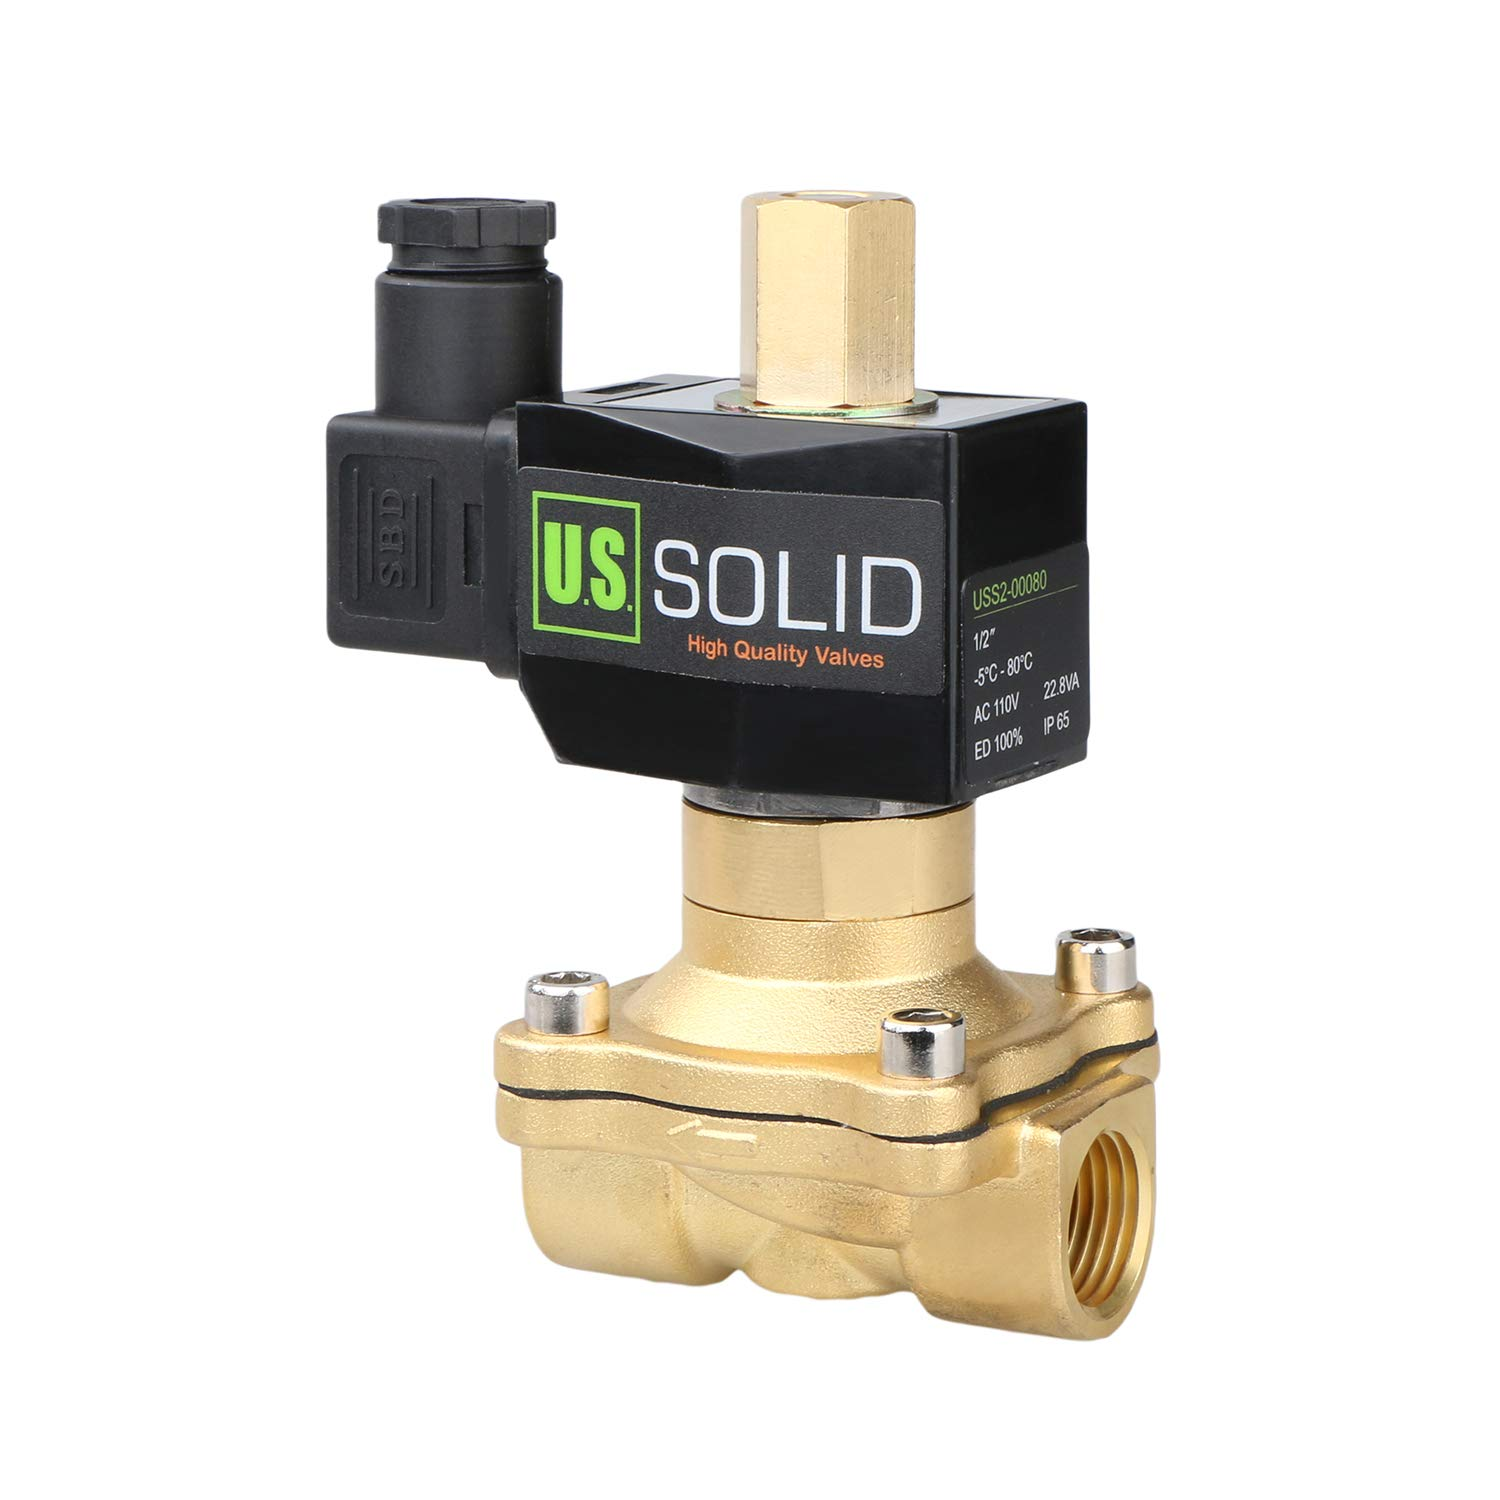 1/2'' Brass Electric Solenoid Valve 110V AC NBR SEAL N.O. (Air, Gas,Fuel.) by U.S. Solid